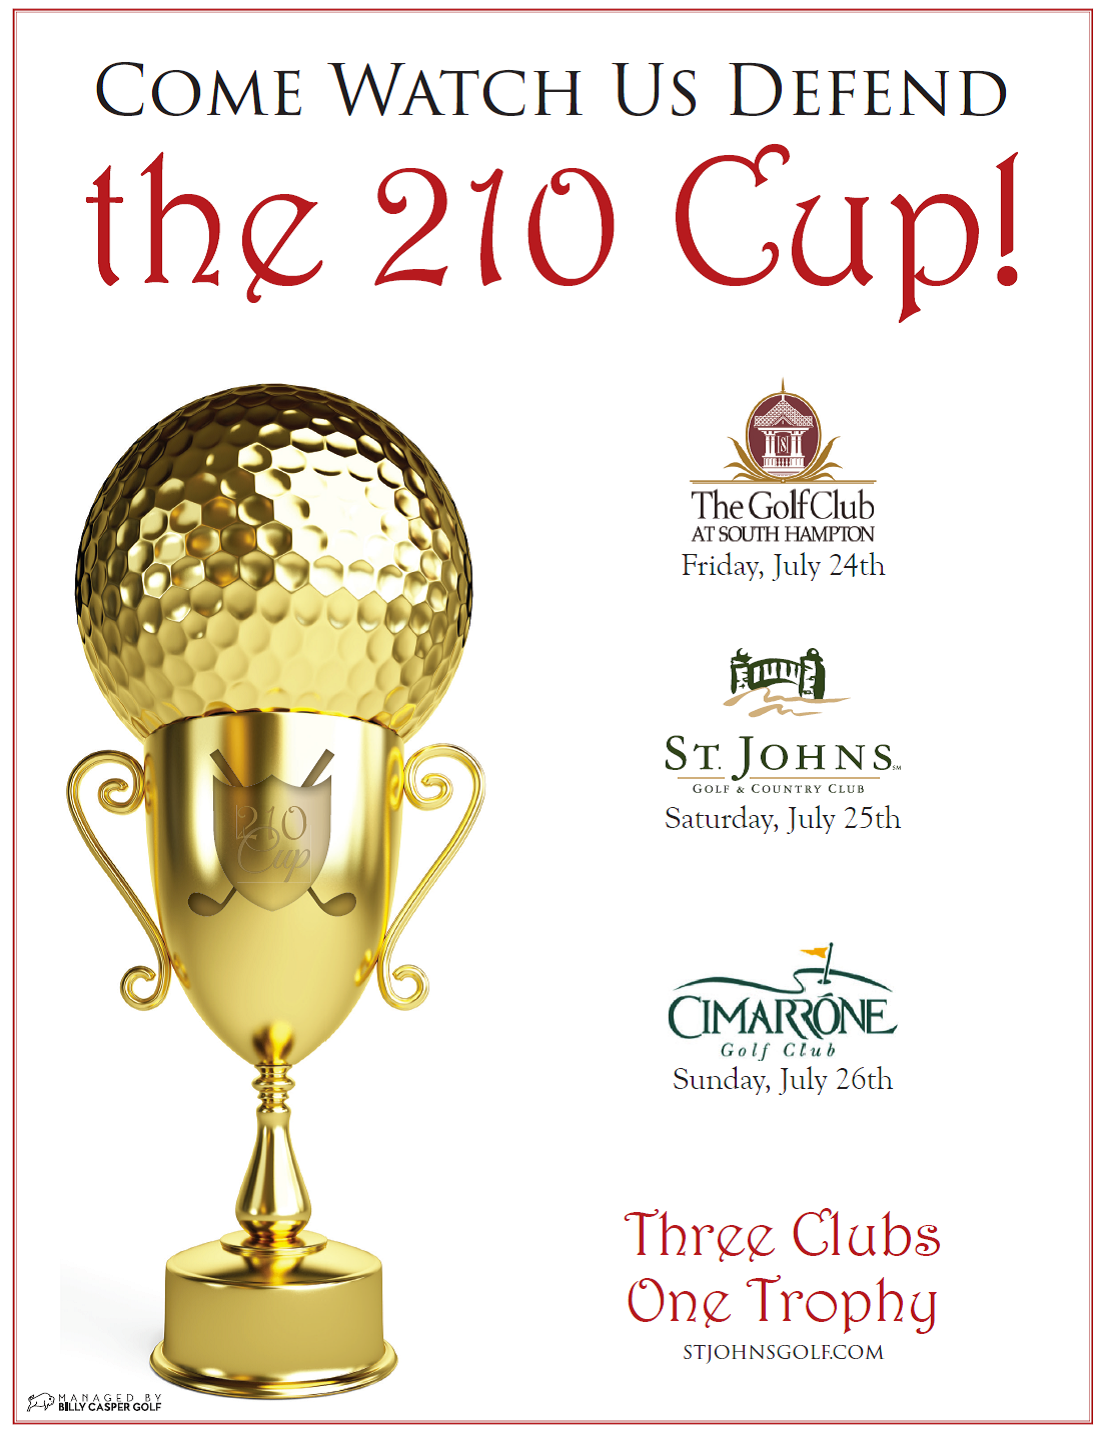 Men's 210 Cup St. Johns Golf & Country Club